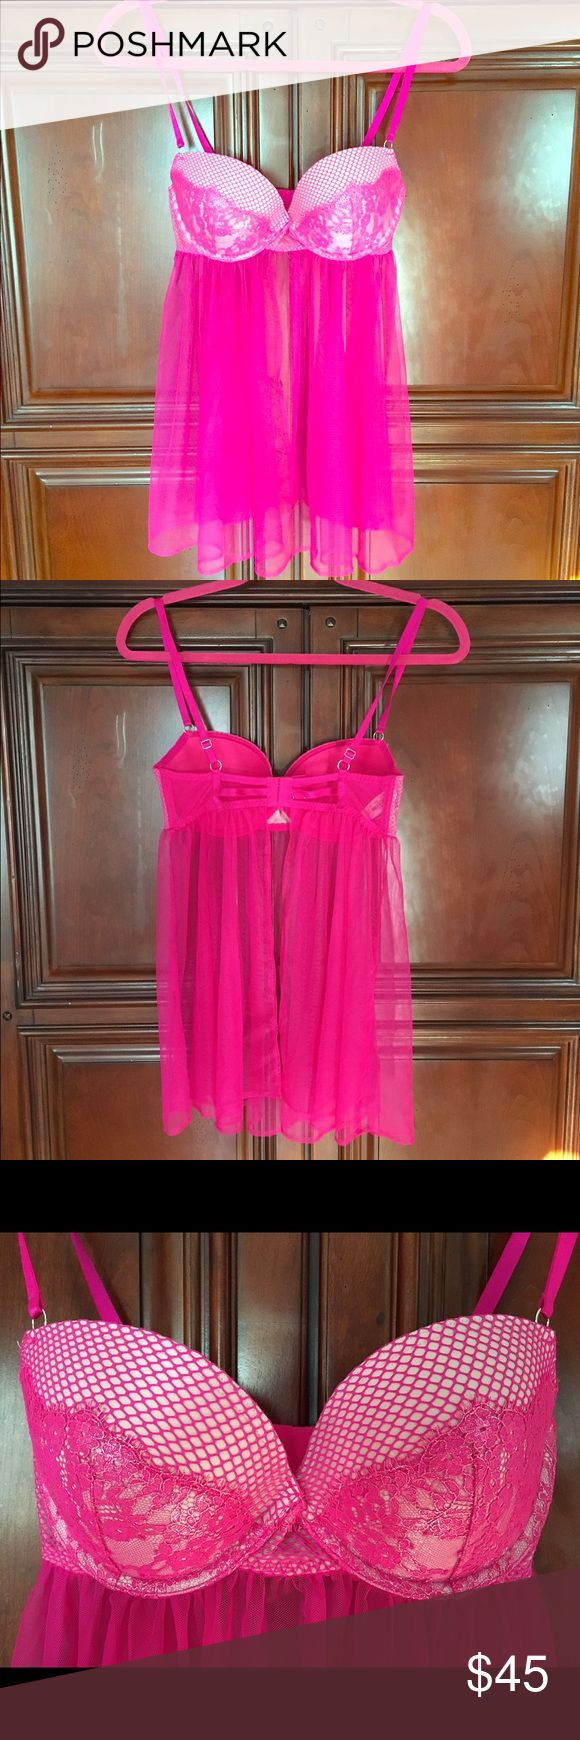 NWT Victoria Secret hot pink bra/Lingerie- 34 B Gorgeous mesh and lace bra top with sheer covering and open back. Sweet & sexy! Victoria's Secret Intimates & Sleepwear Bras